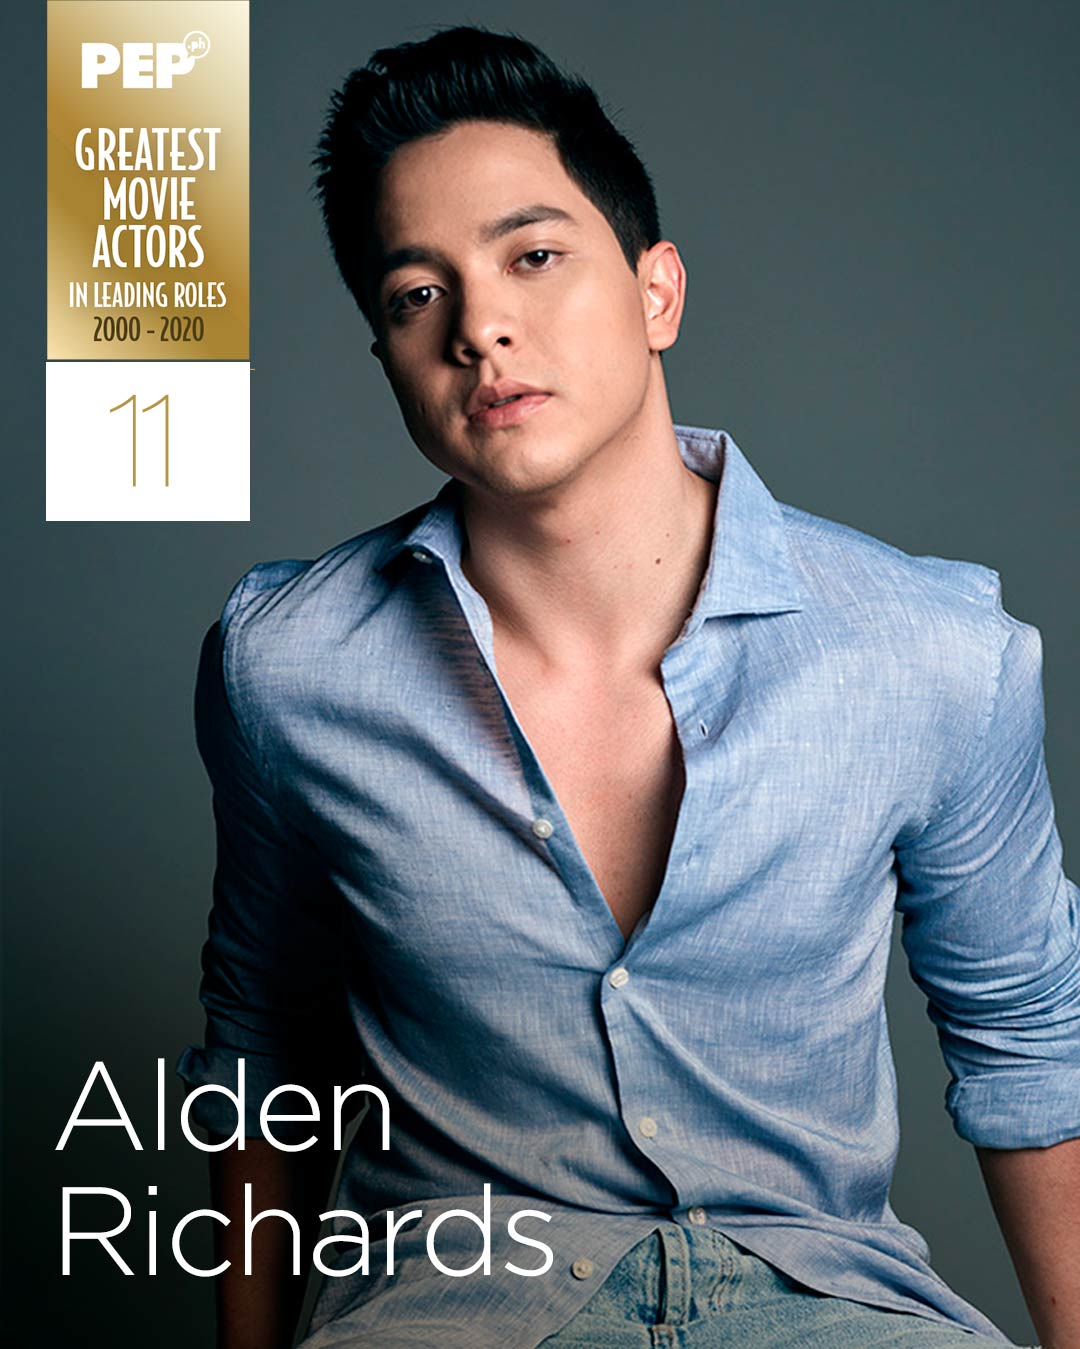 Alden Richards, 15 Greatest Movie Actors in Leading Roles